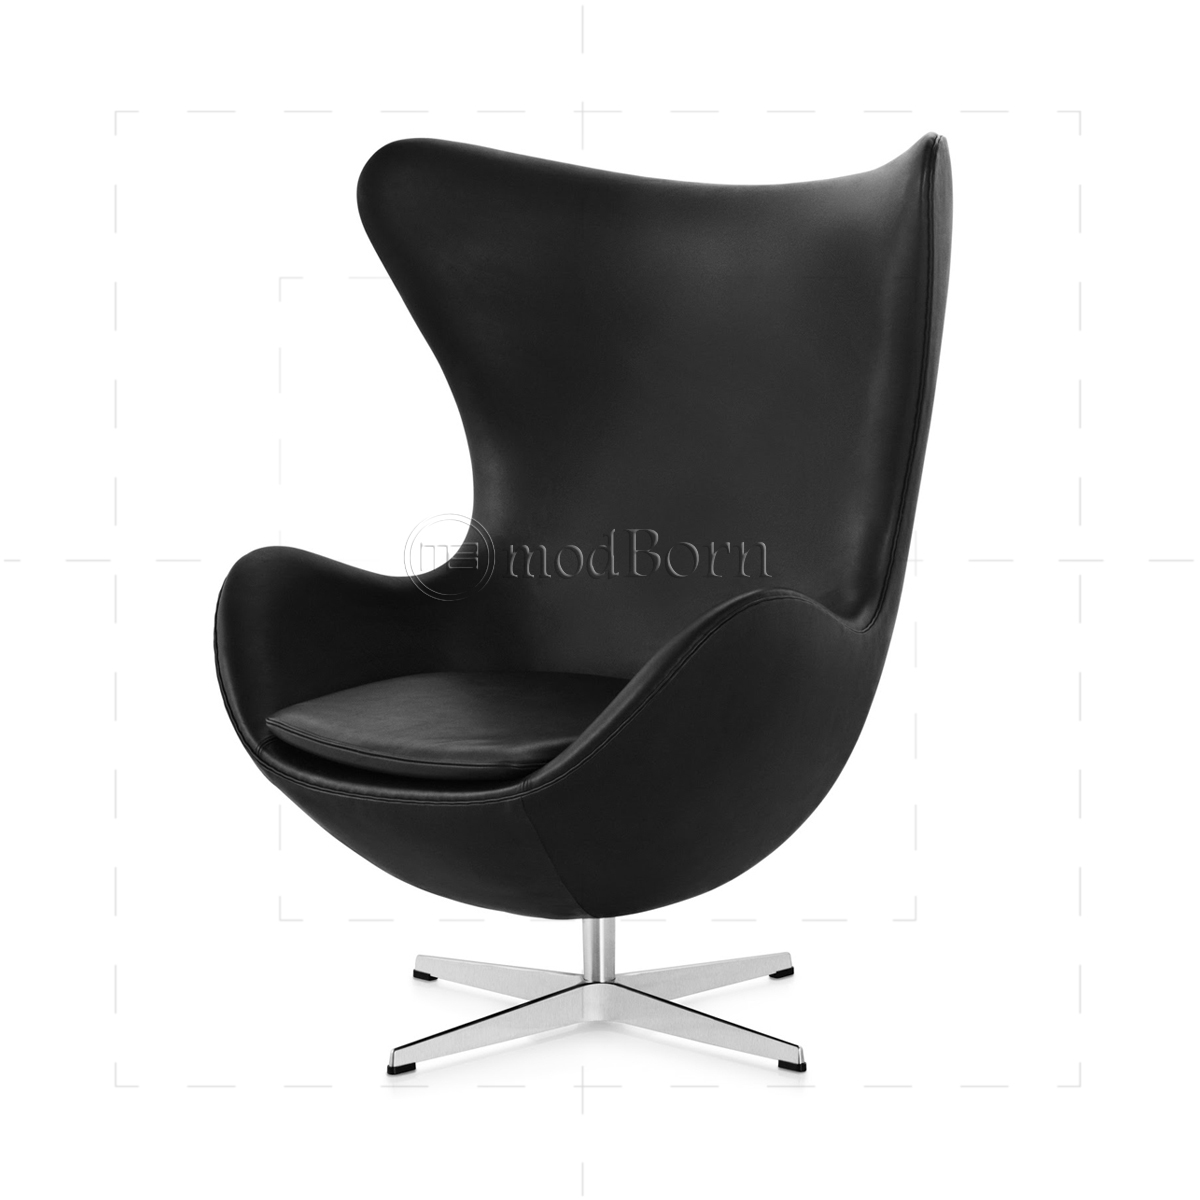 Arne jacobsen style egg chair black leather for Egg chair jacobsen